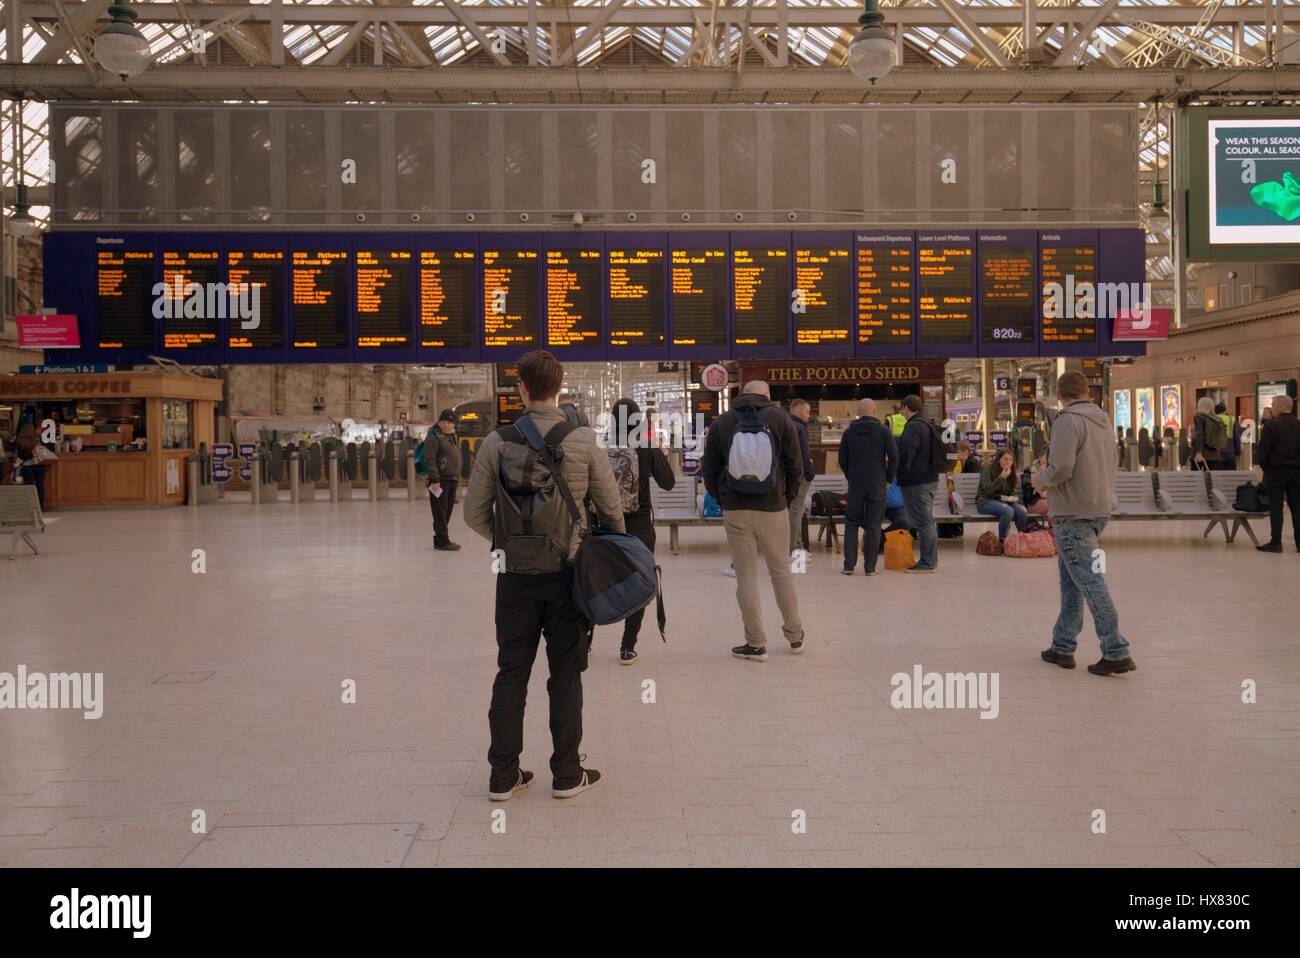 central station Glasgow interior - Stock Image